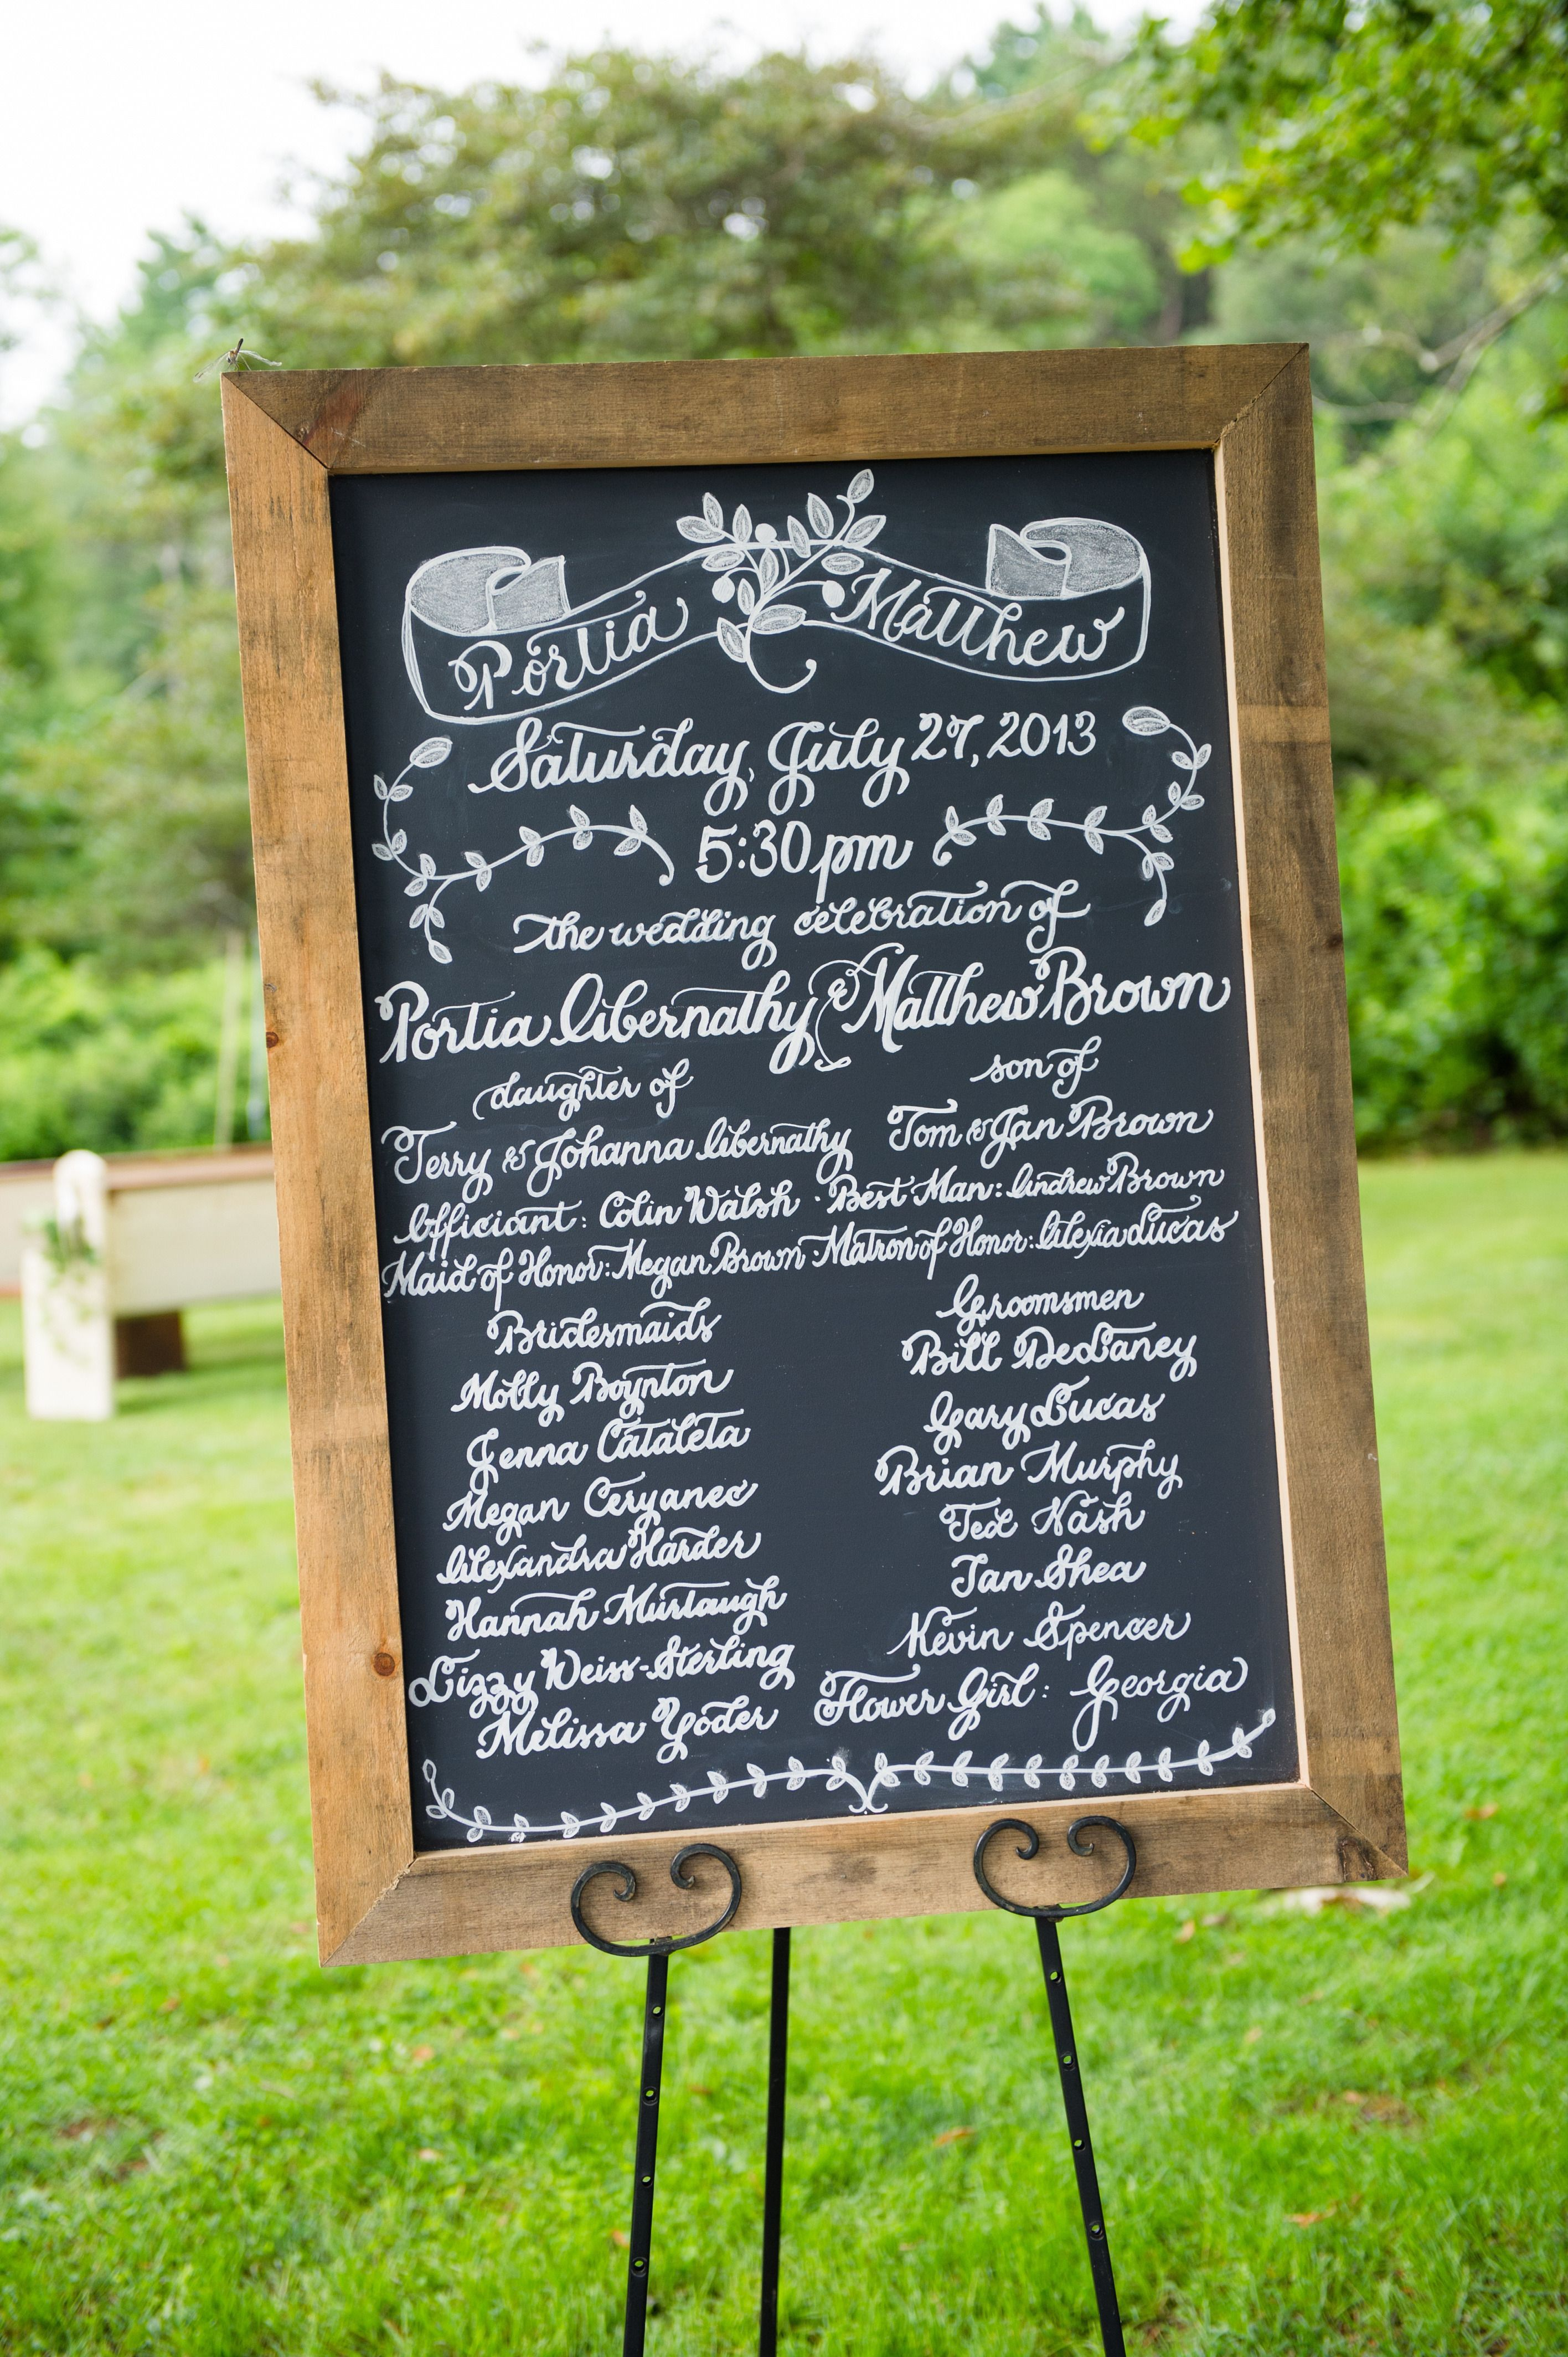 Framed Chalkboard Program... Forego the written program. Nice momento of the day. See more of the wedding here: http://www.StyleMePretty.com/2014/05/16/new-england-rustic-wedding/ Photography: GrazierPhotography.com